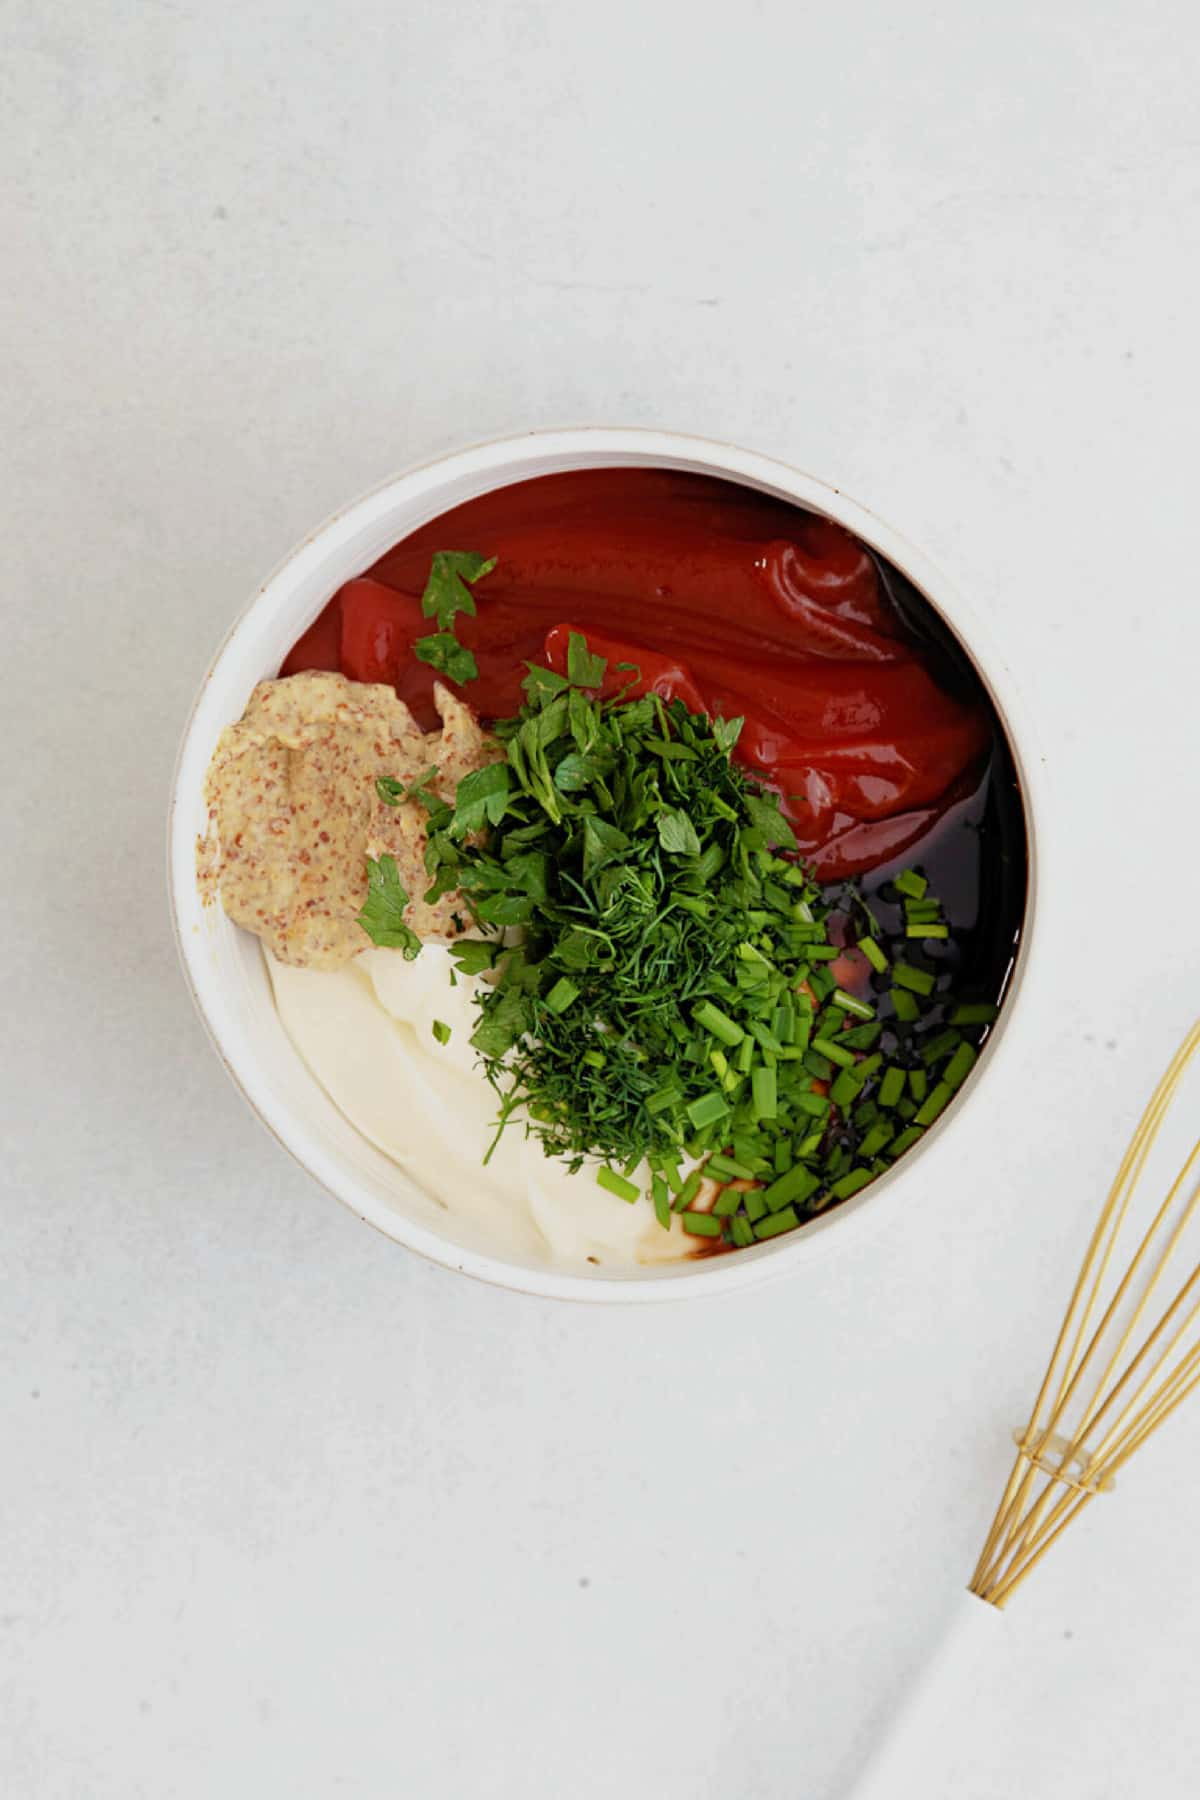 Ingredients for Russian dressing in a white ceramic bowl - ketchup, mayo, dijon, Worcestershire, fresh herbs